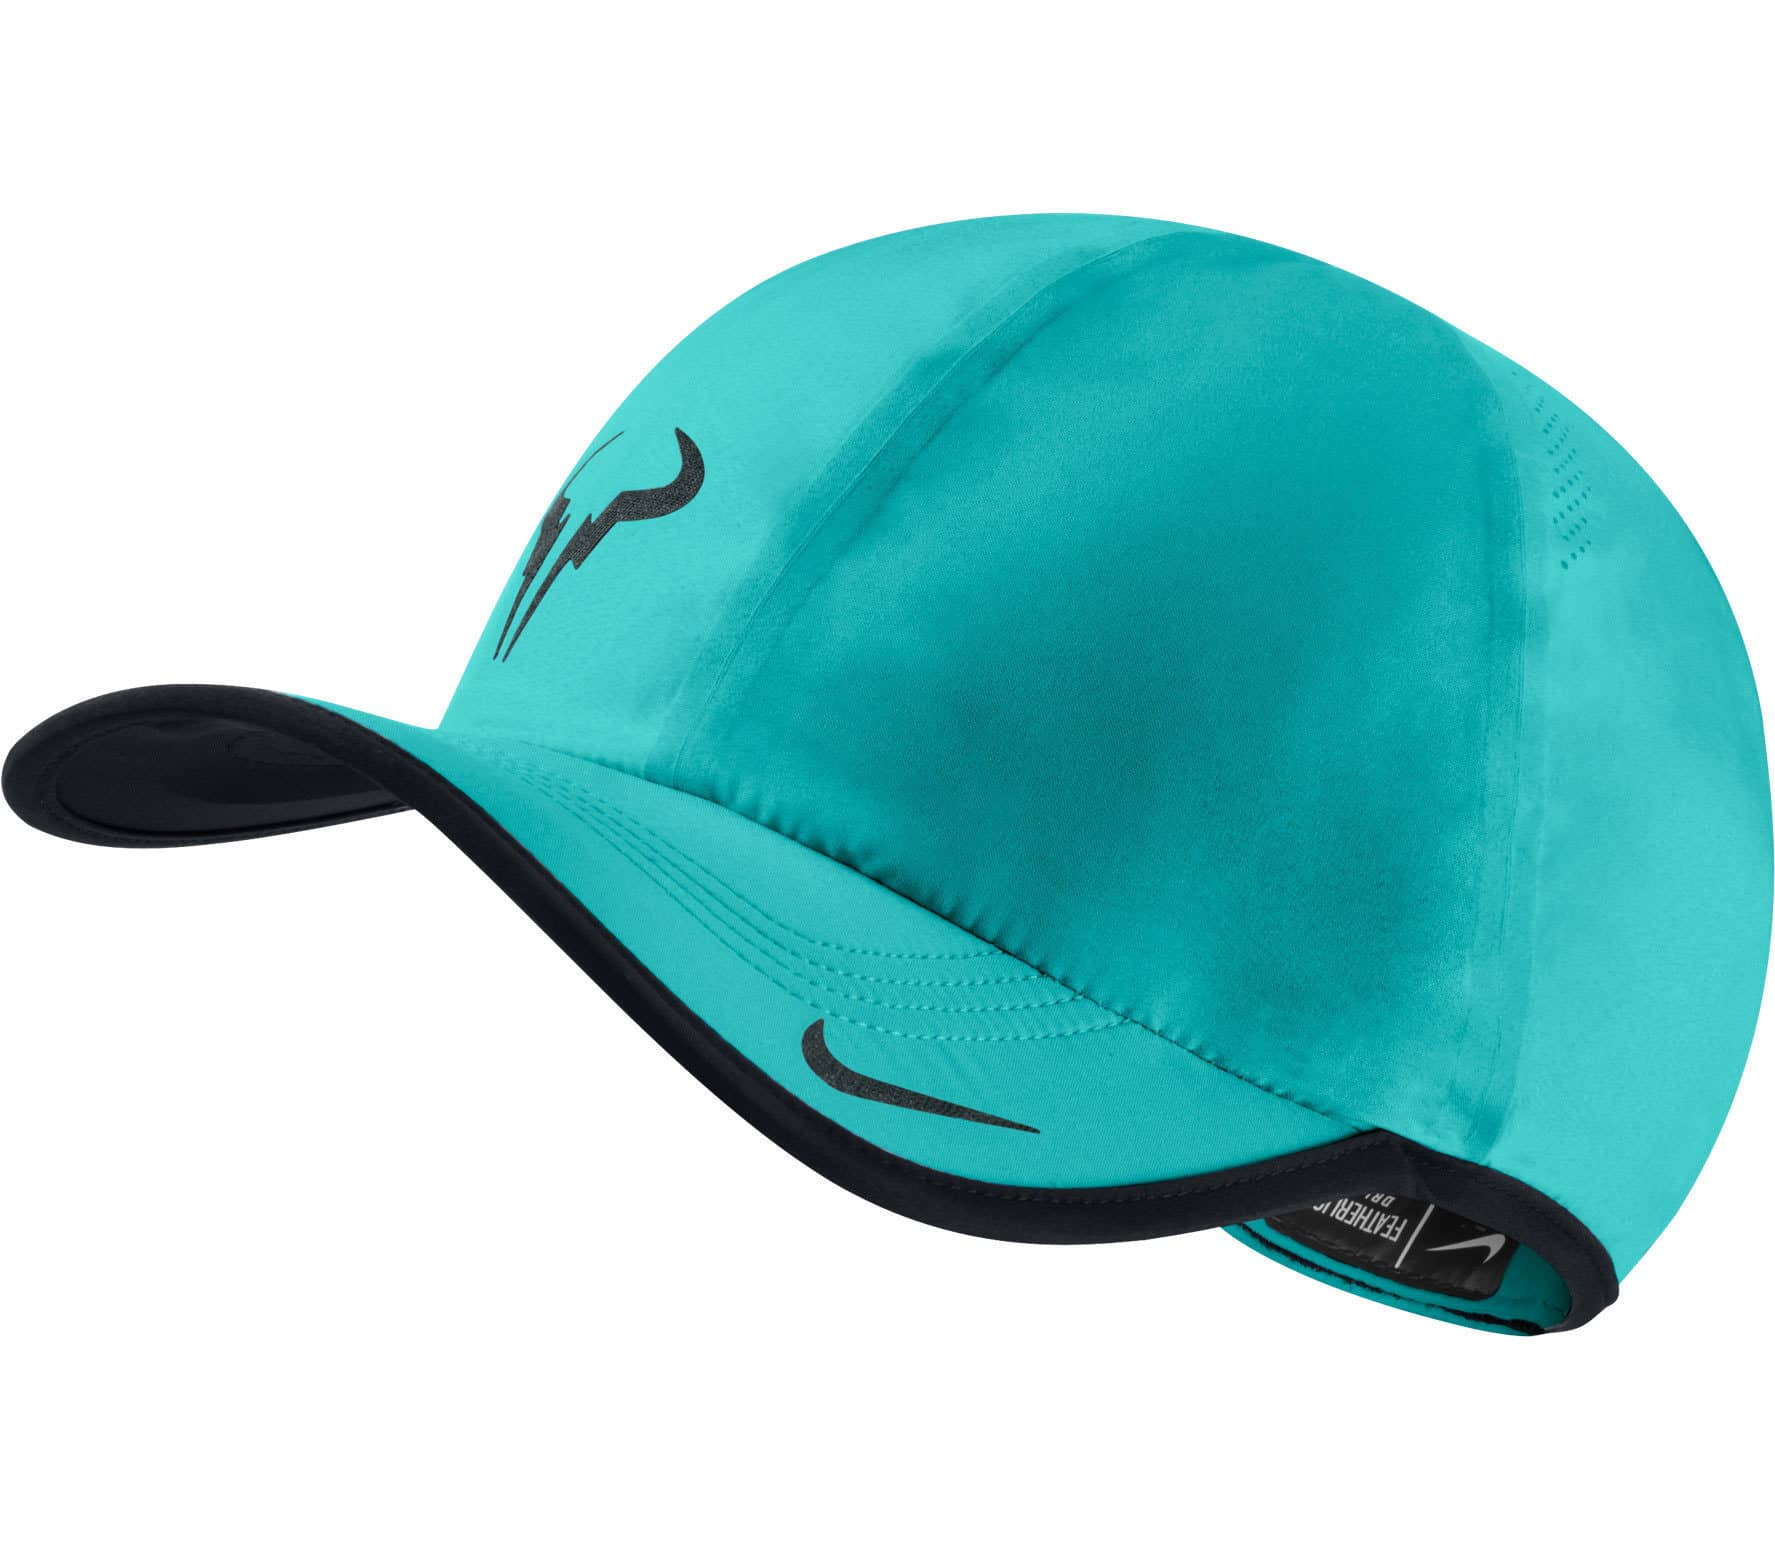 a54d02a72ae31 Nike - Rafael Nadal Bull Featherlight cap (turquoise) - buy it at ...